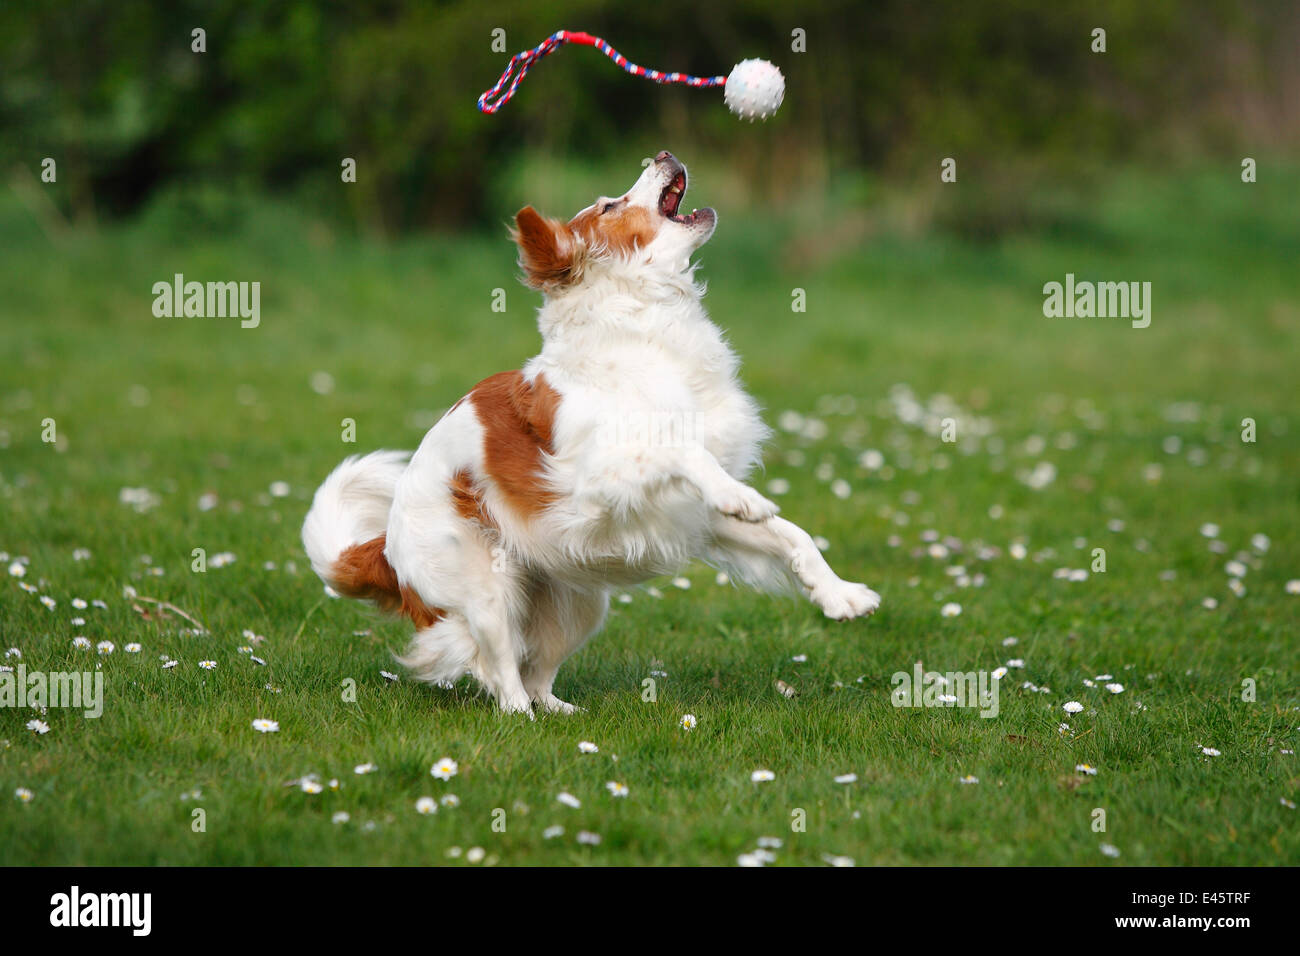 Kromfohrlander playing with ball / toy, in a field. - Stock Image